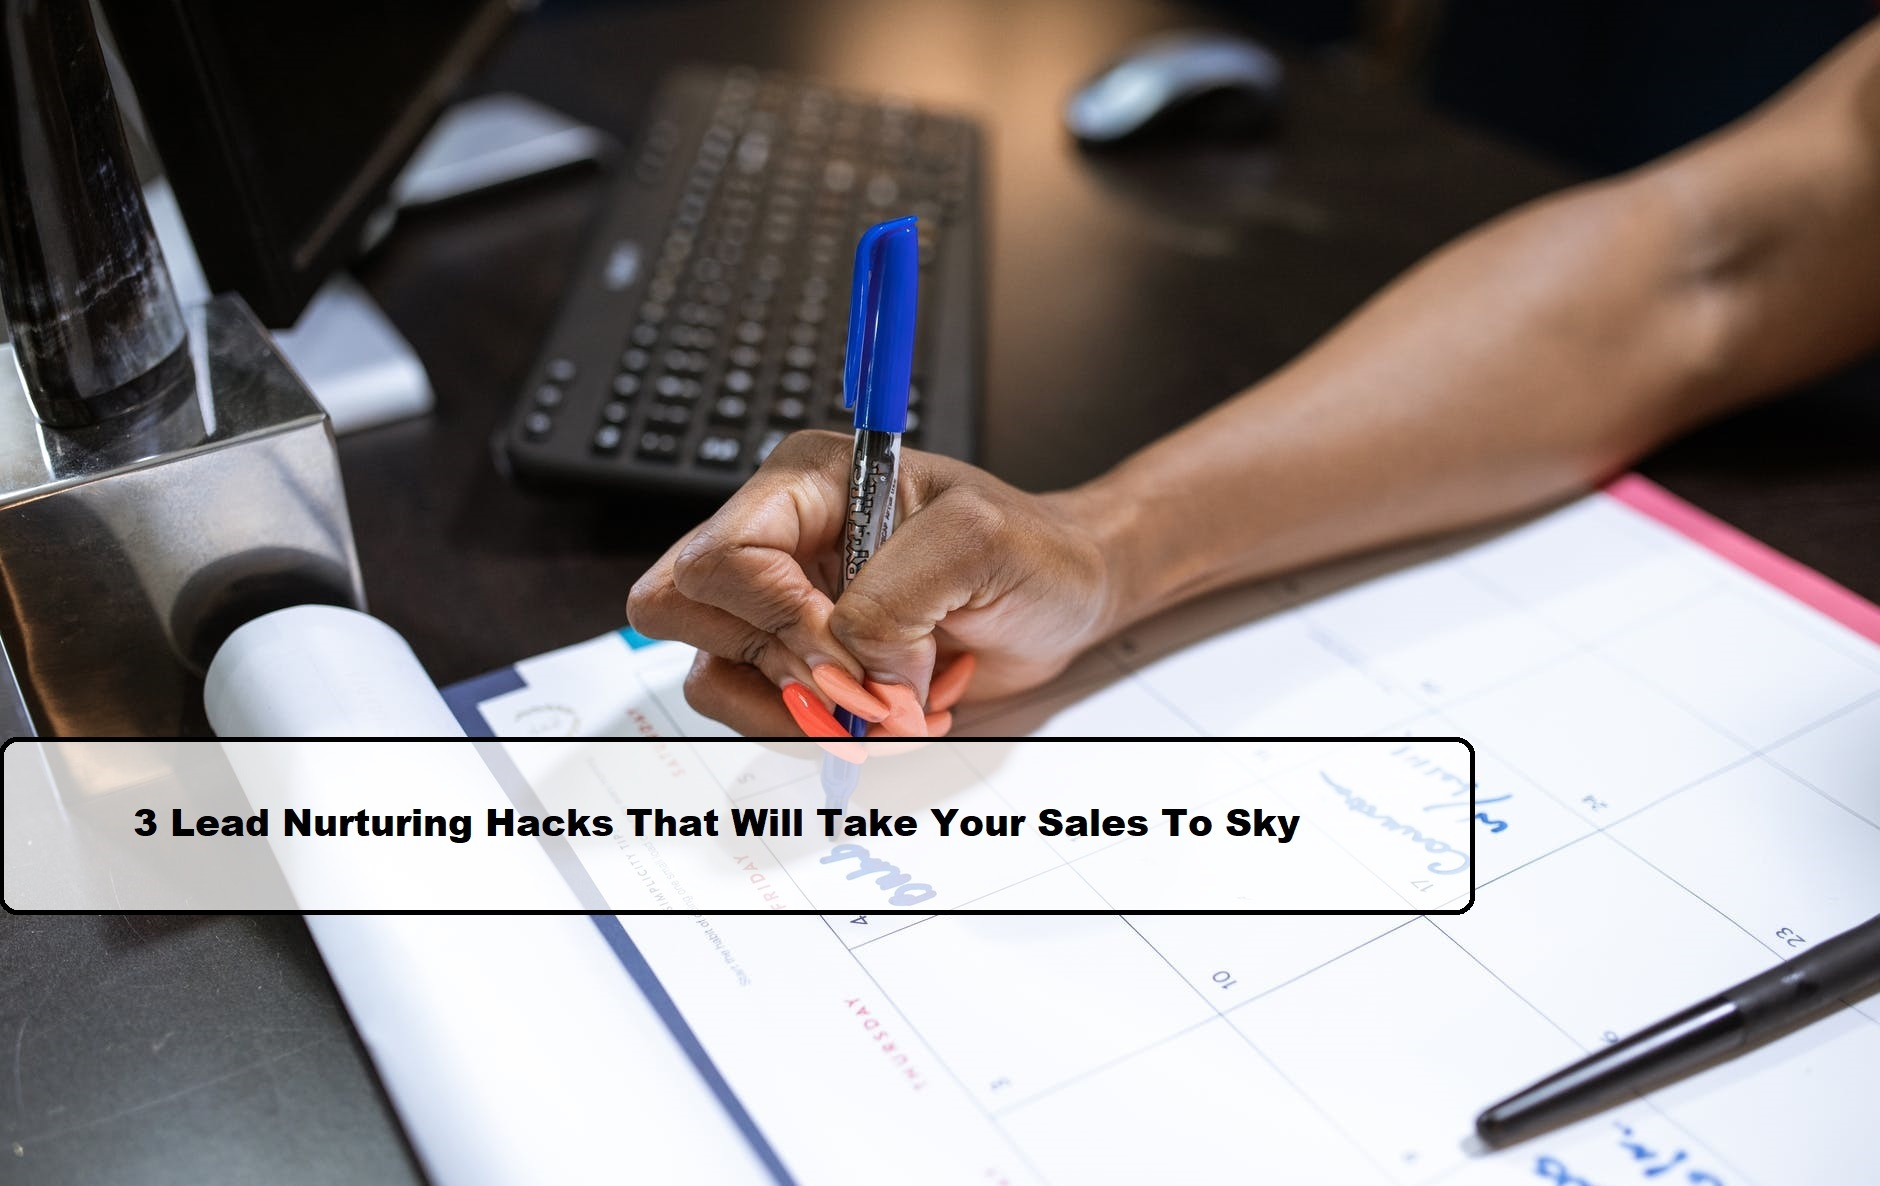 3 Lead Nurturing Hacks That Will Take Your Sales To Sky